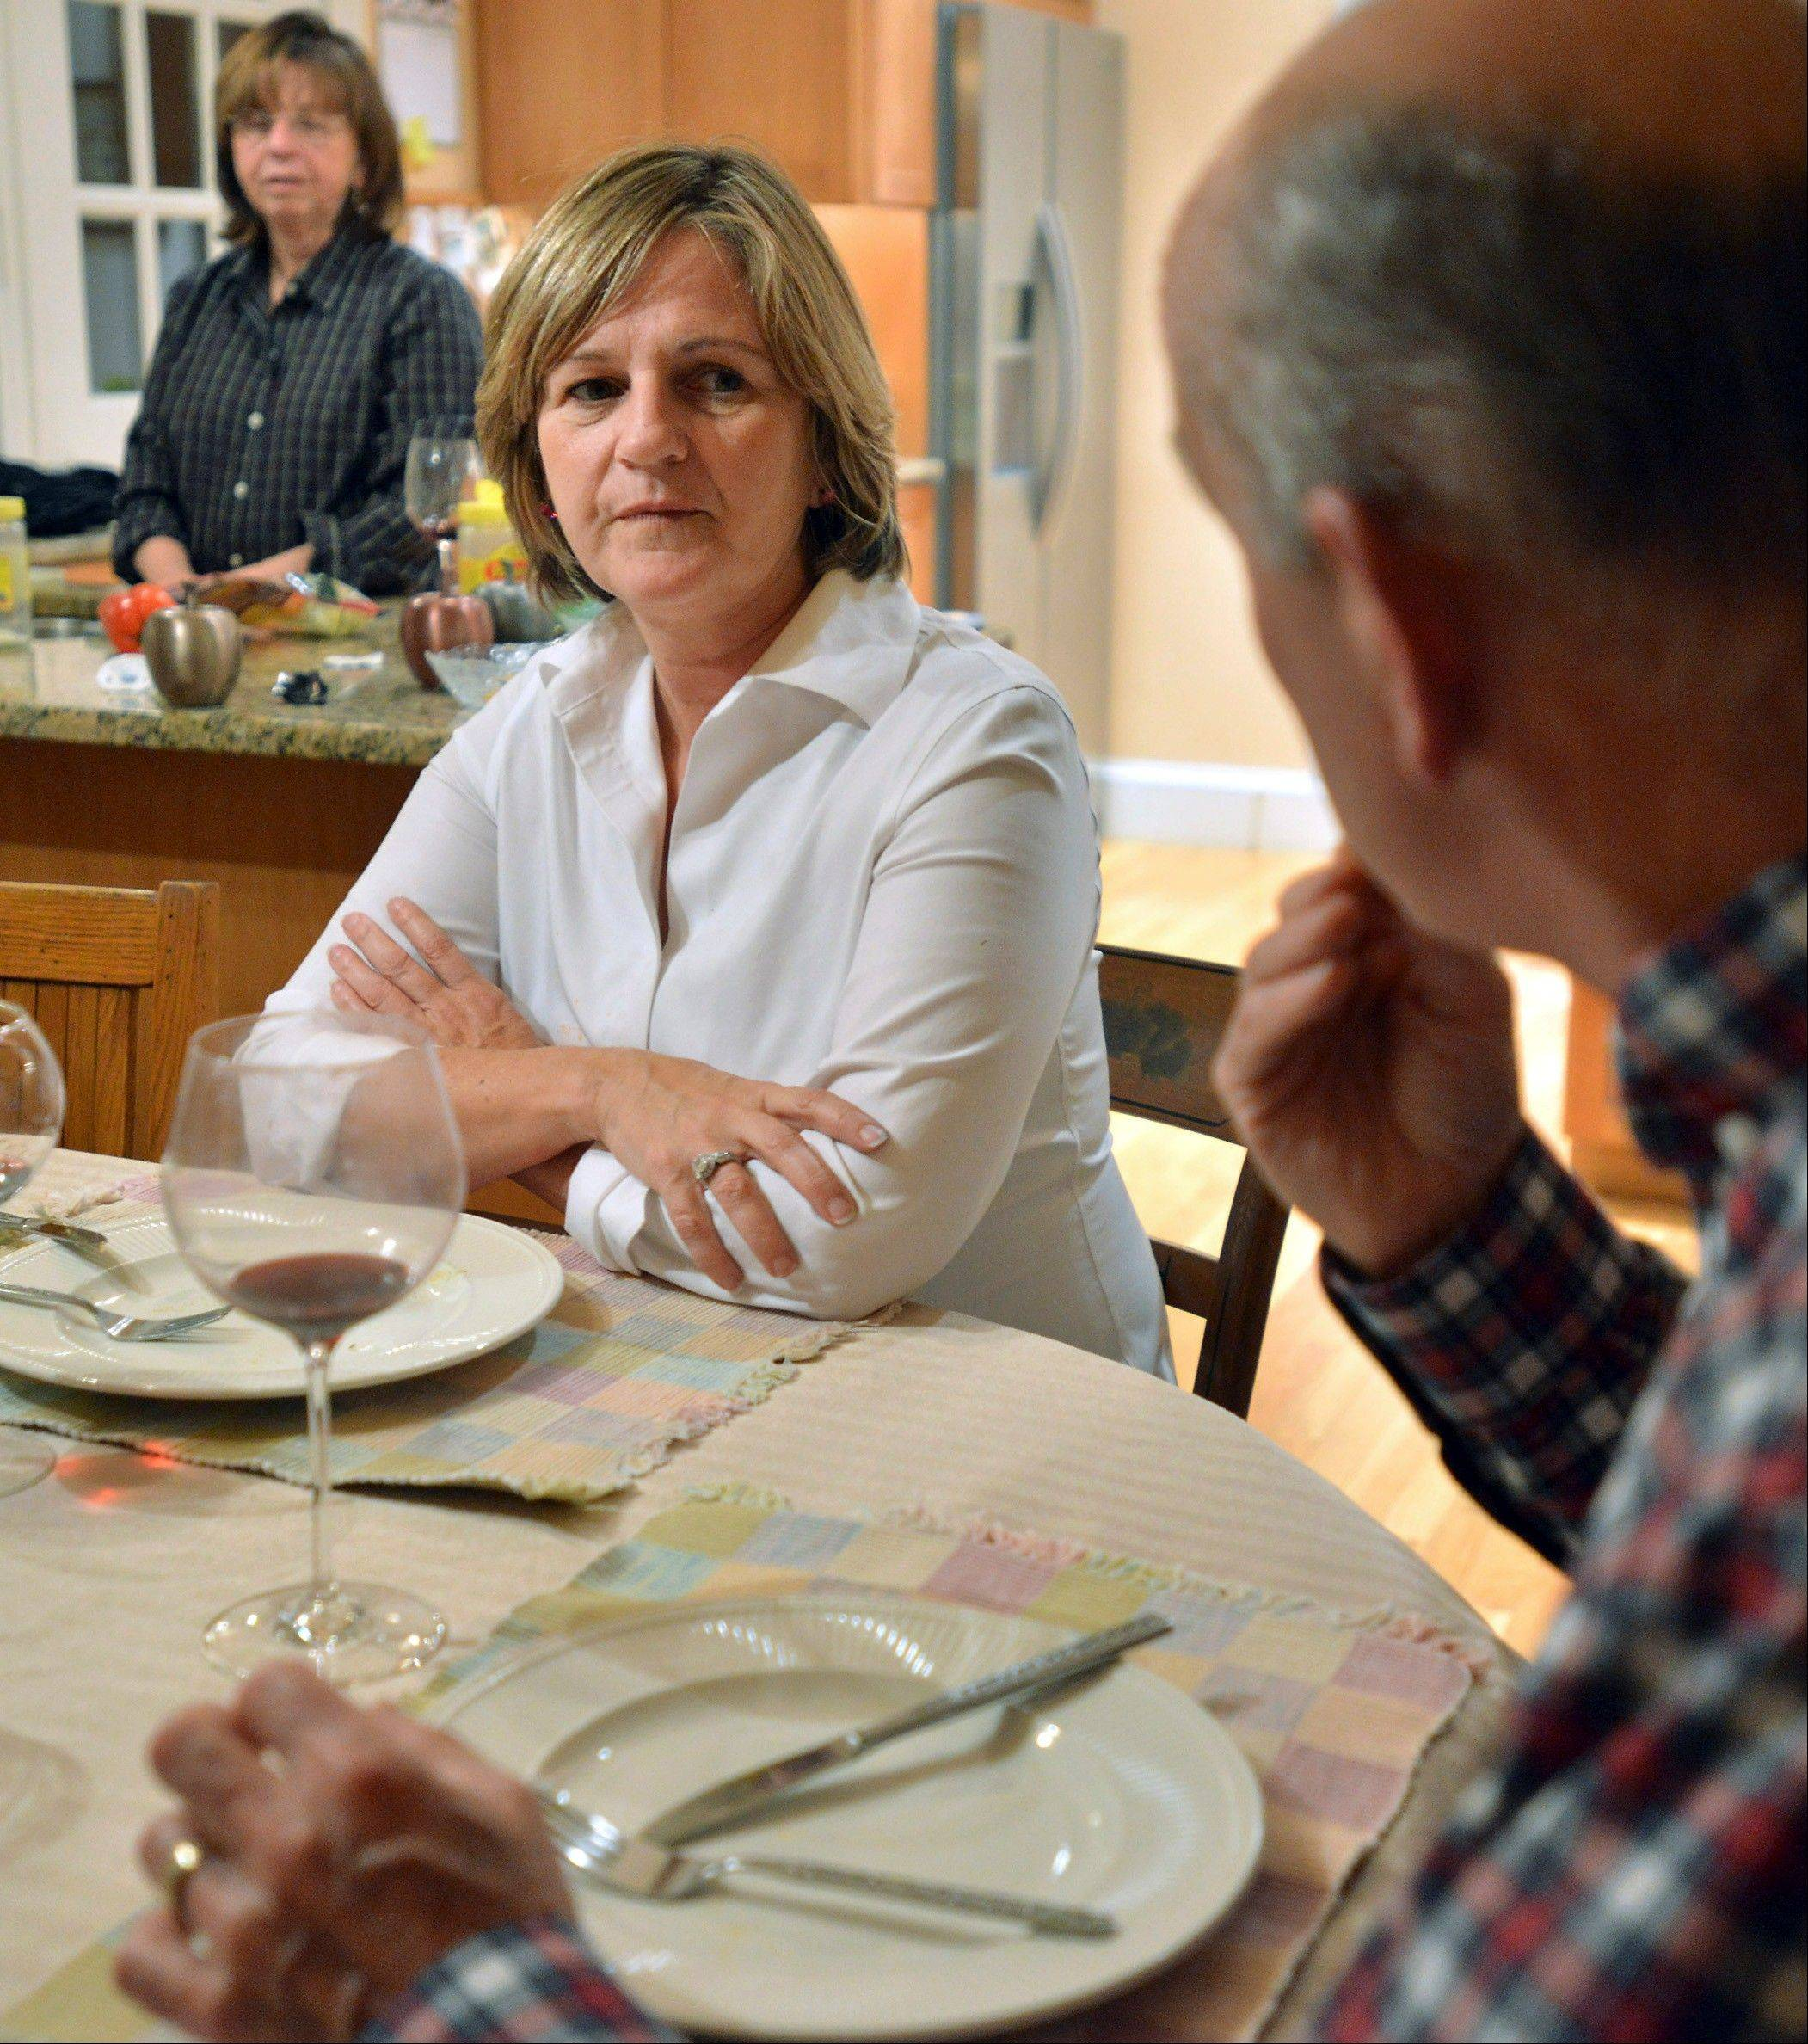 Anne Brennan, center, of Hingham Mass., listens to her sister, Linda Marshall, rear, and brother-in-law Steve Marshall, right, discuss the recent presidential election as the family gathers for dinner in Hingham and where politics are a frequent � and divisive � topic of conversation.